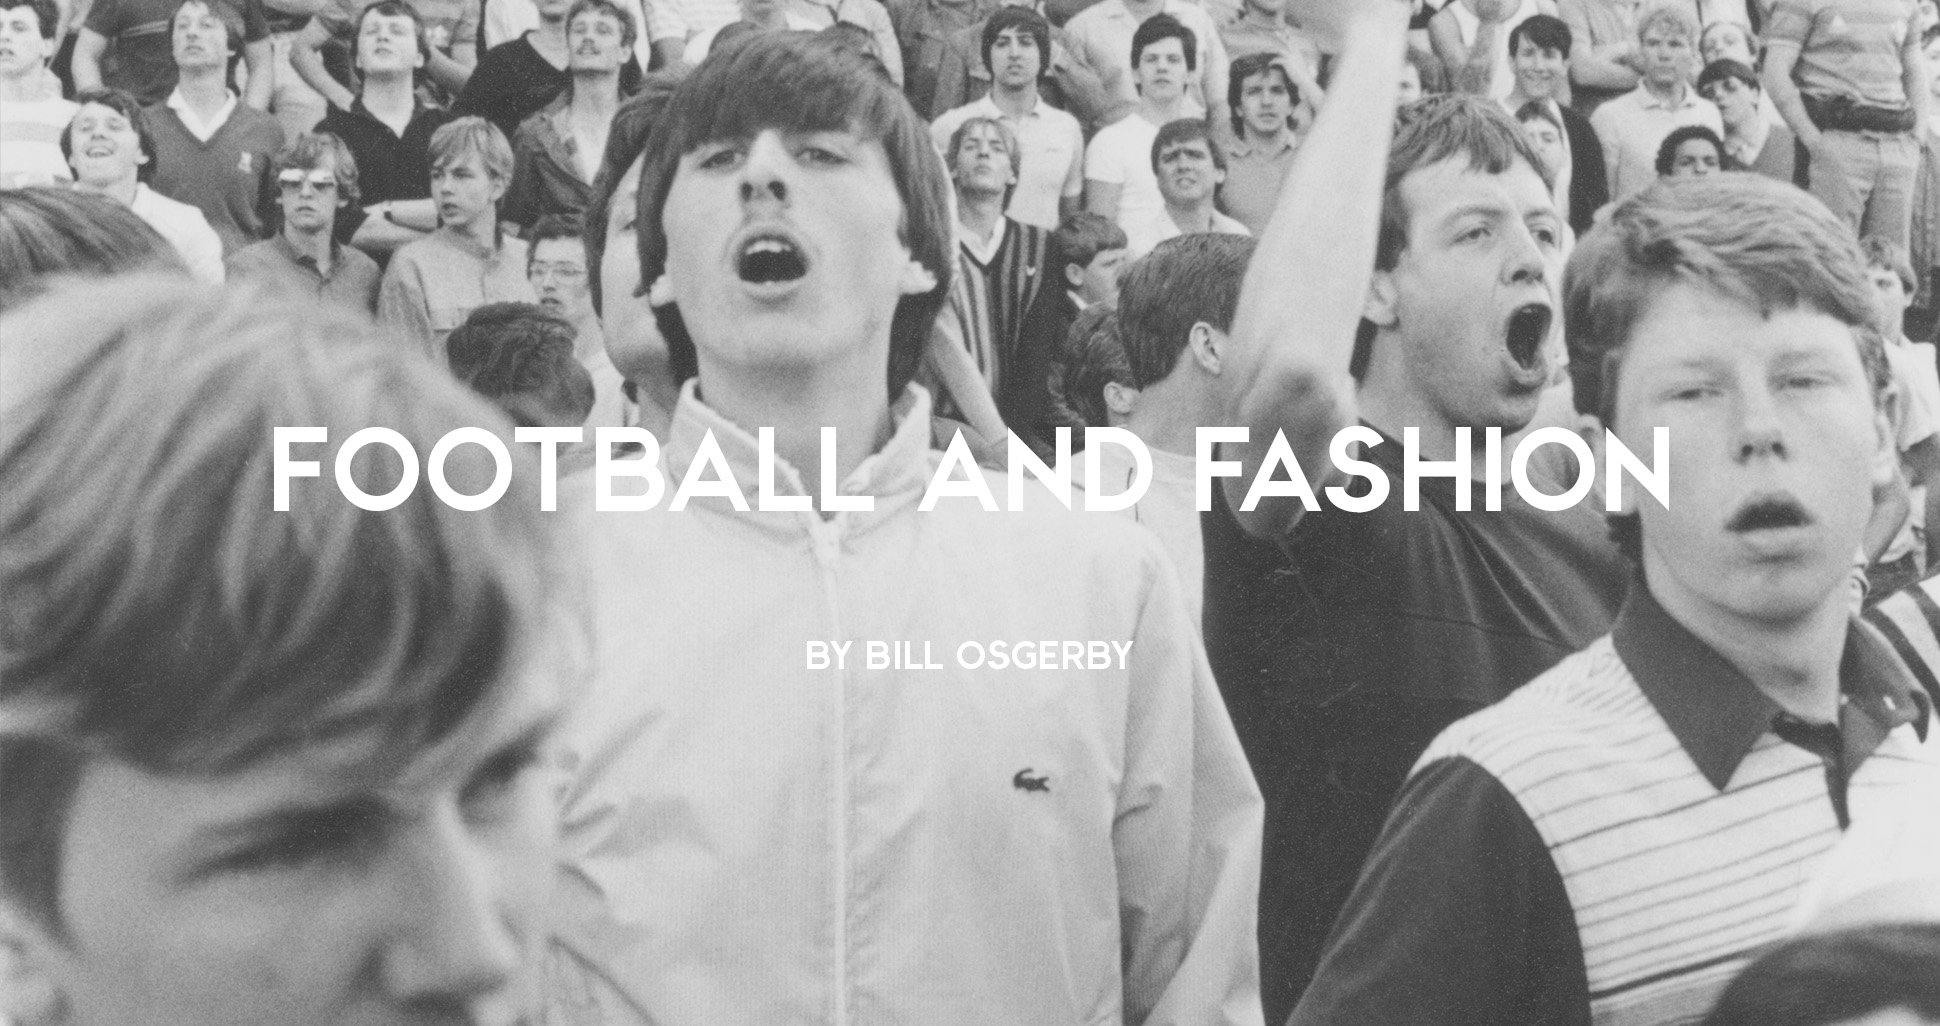 Football casual in a Lacoste jacket at a football match, 1980s by John Ingledew